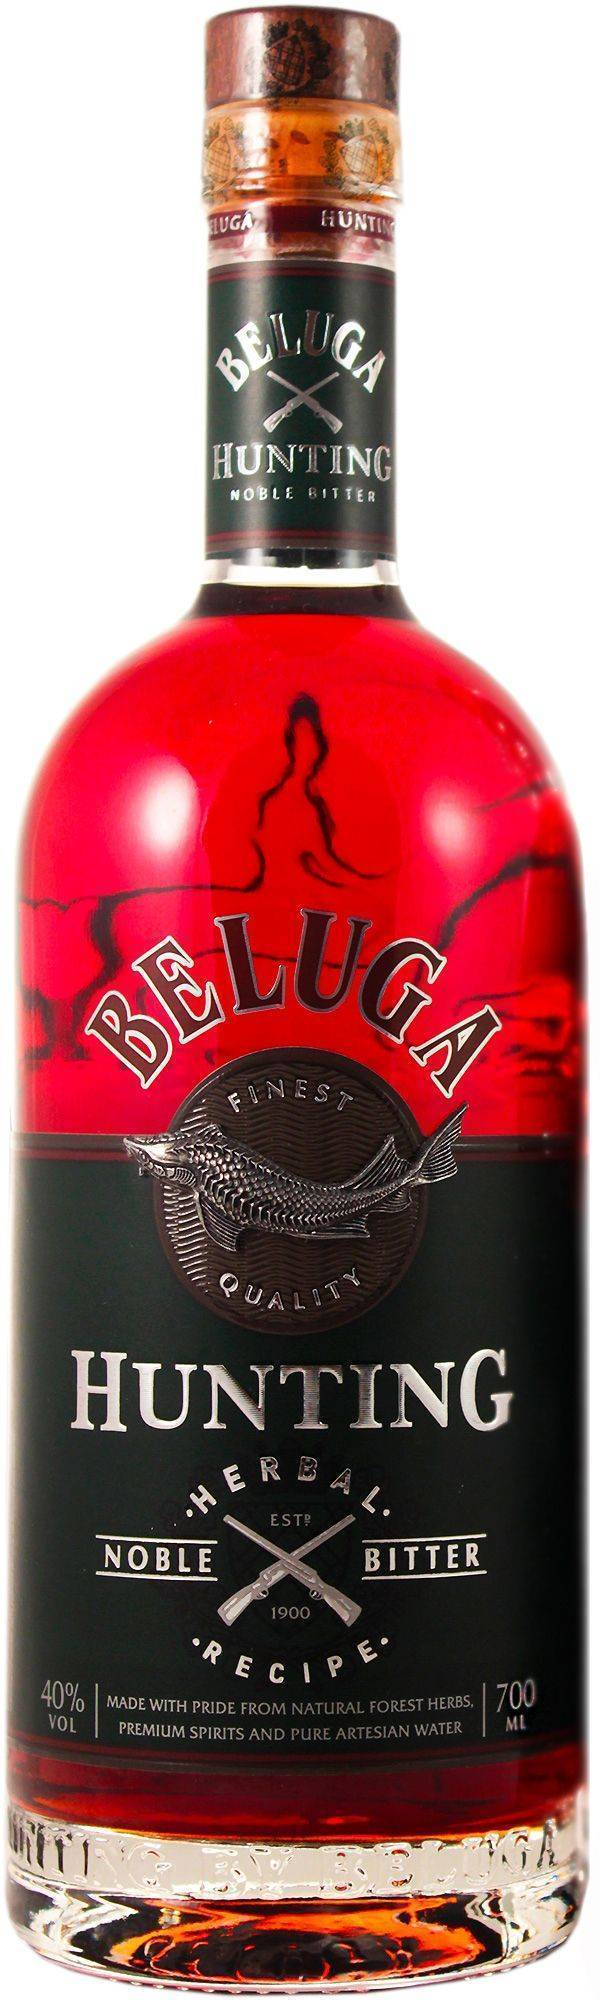 Обзор ликёра Beluga Hunting Berry